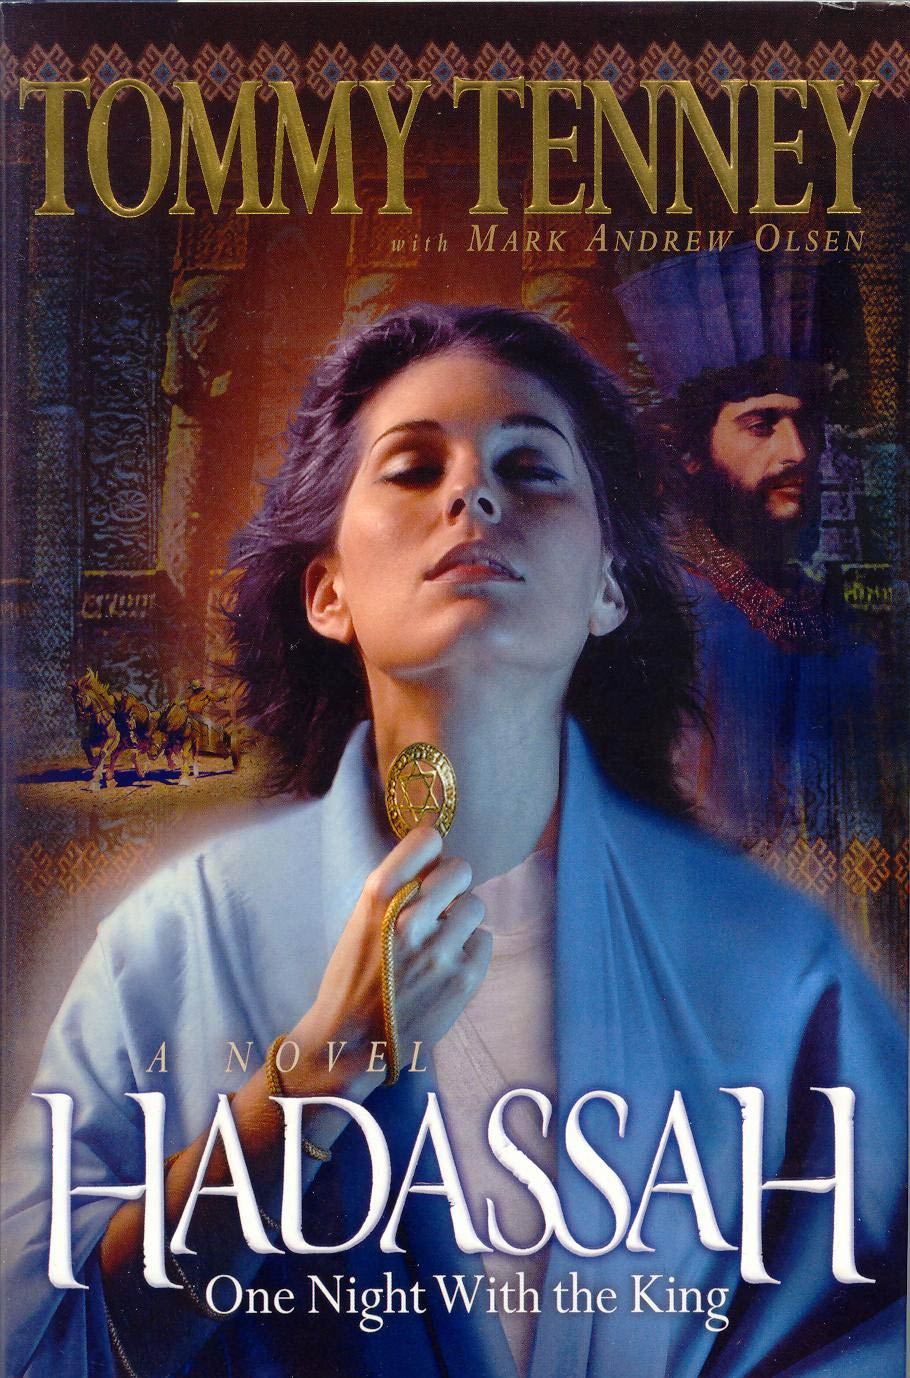 Hadassah, a novel by Tommy Tenney